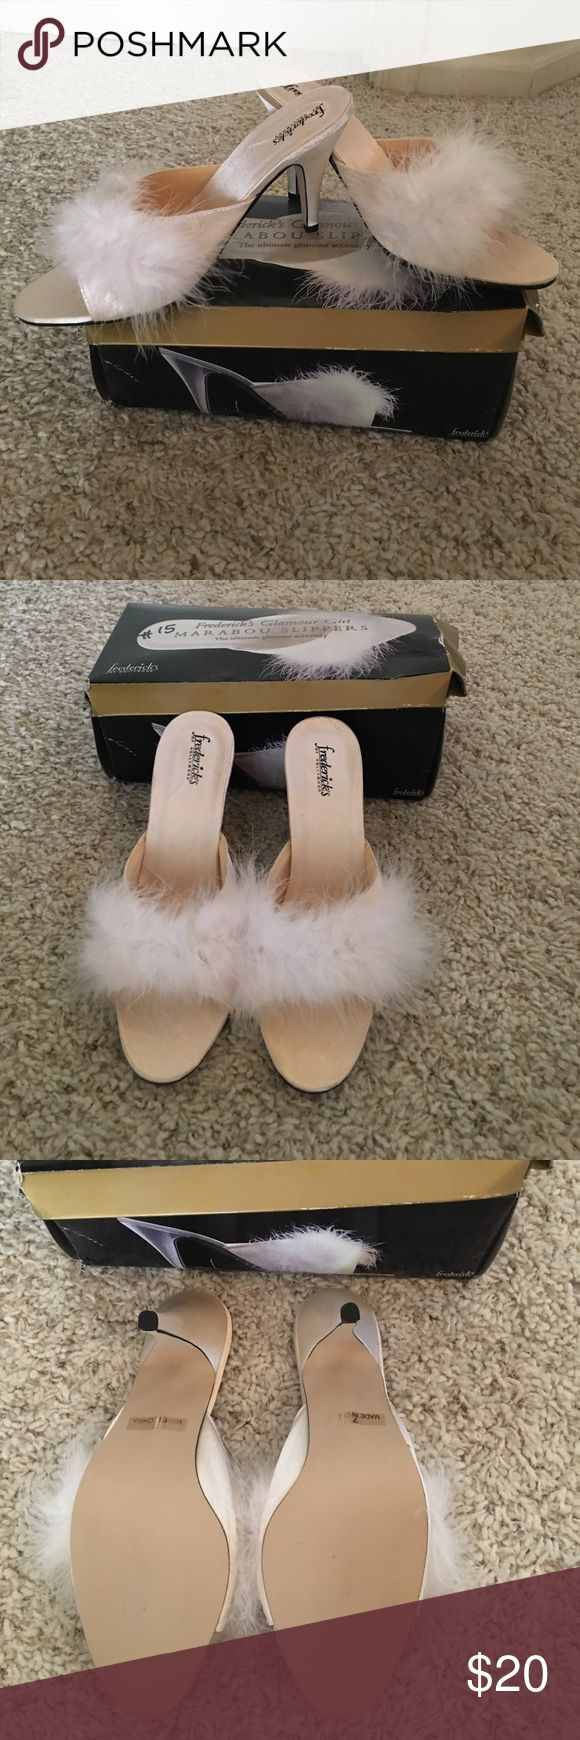 Frederick of Hollywood marabou slipper. Sexy! Fredericks of Hollywood glamour girl mayor of those slippers. In excellent condition like new.  In absolutely perfect condition Frederick's of Hollywood Shoes Heels